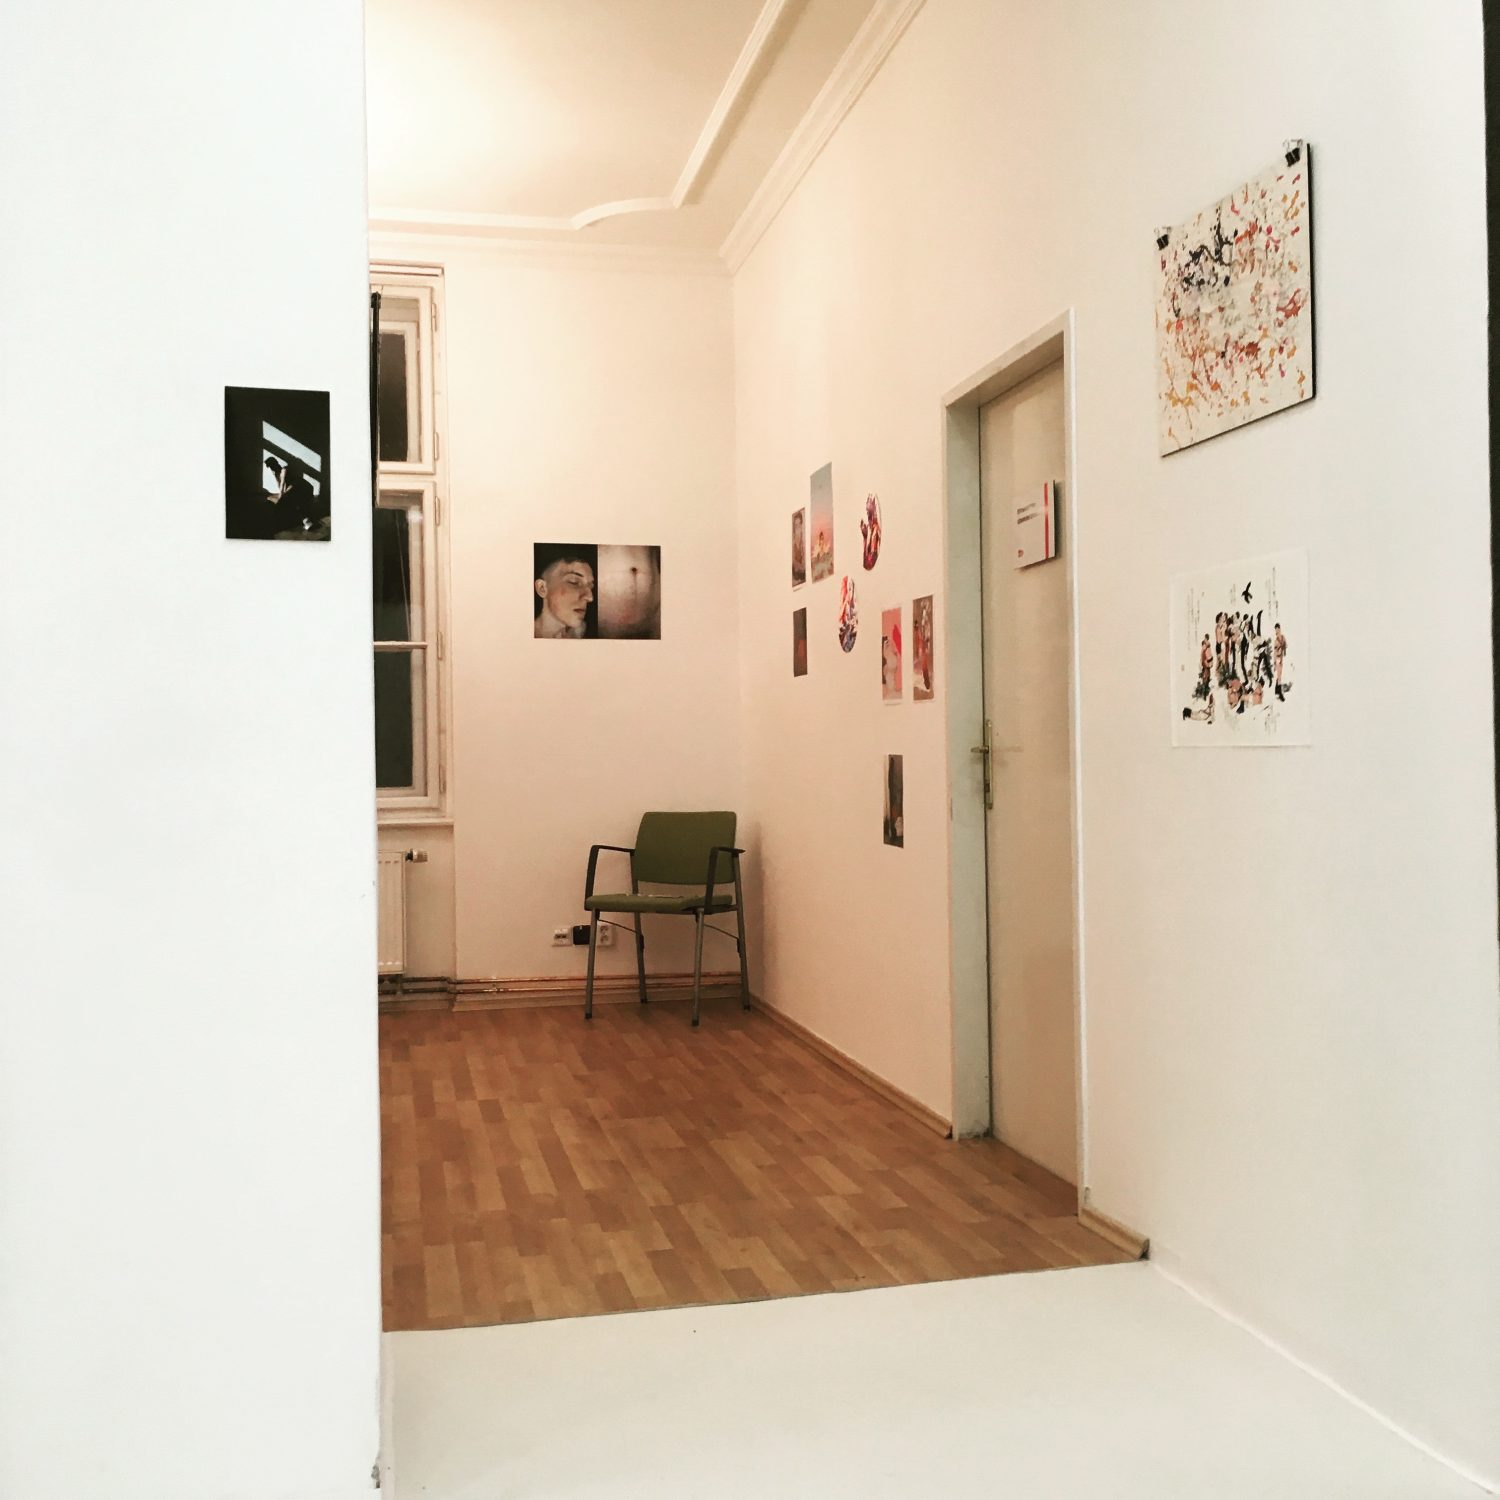 EXHIBITION N°4 – PRAGUE, CZECH REPUBLIC